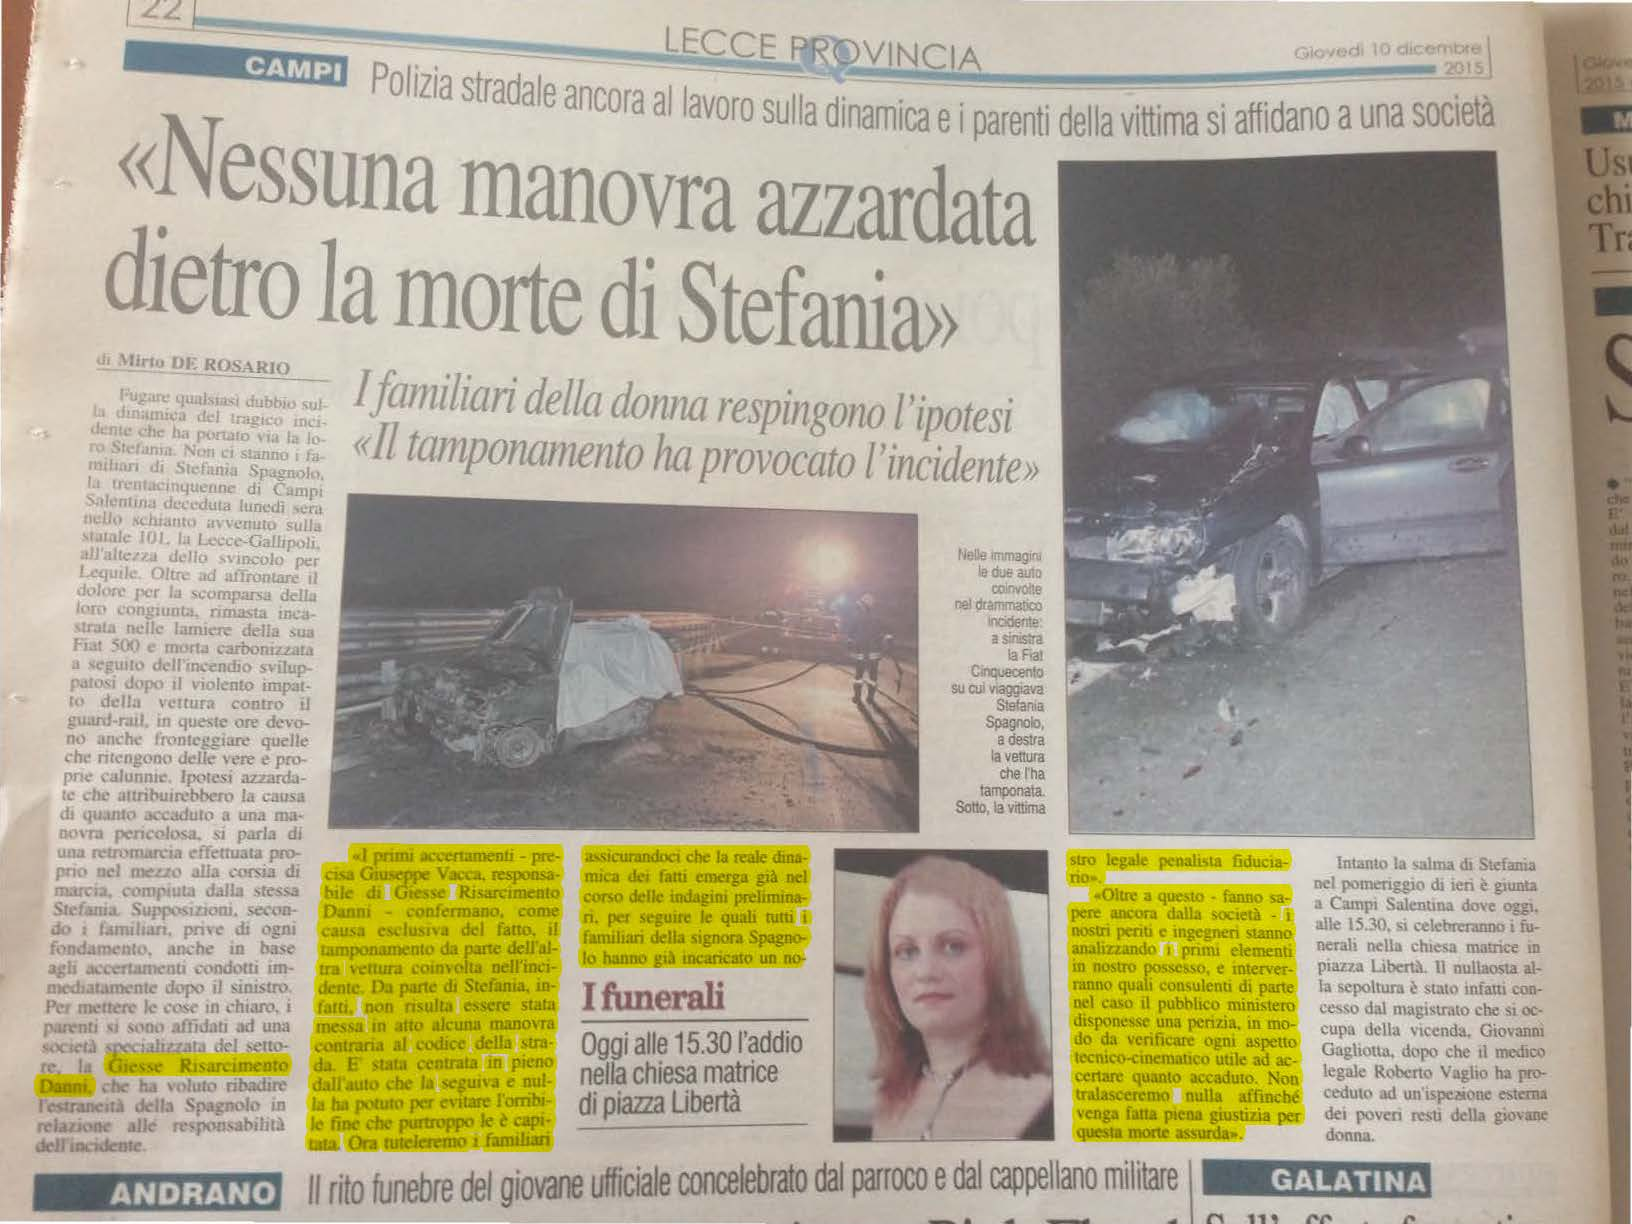 Risarcimento-Incidente-Stafania-giesse